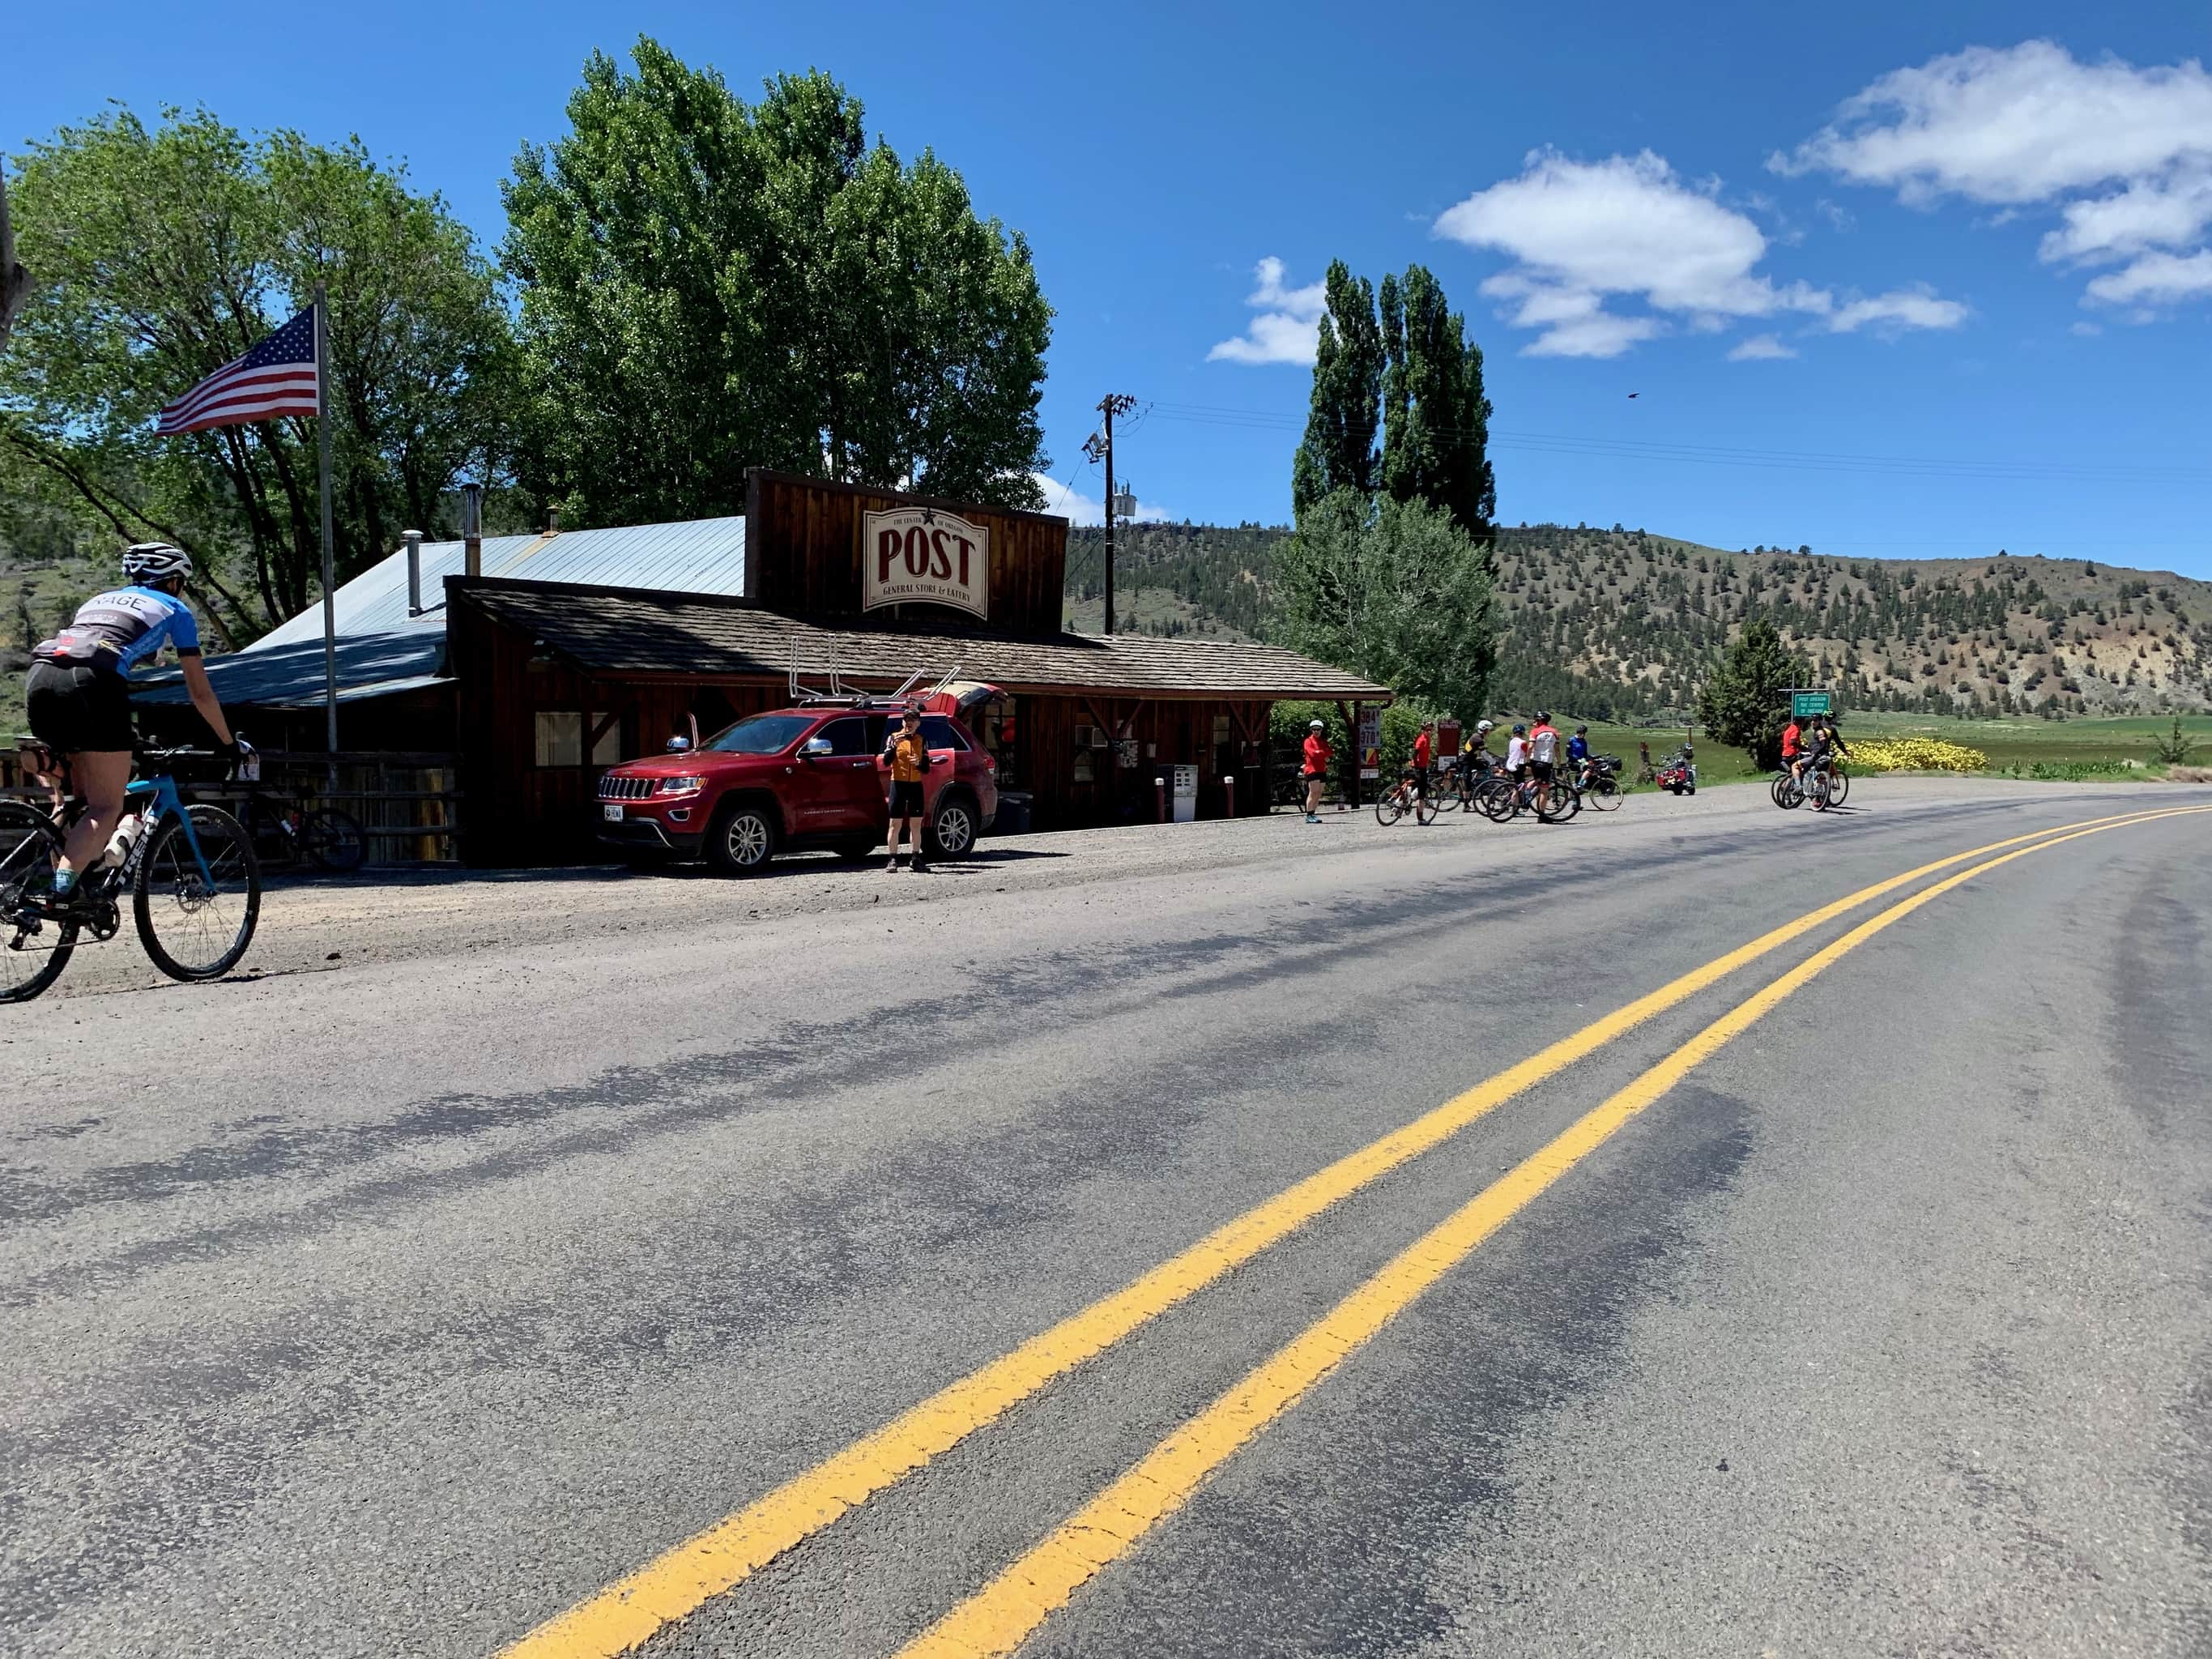 Cyclists at the Post General store.